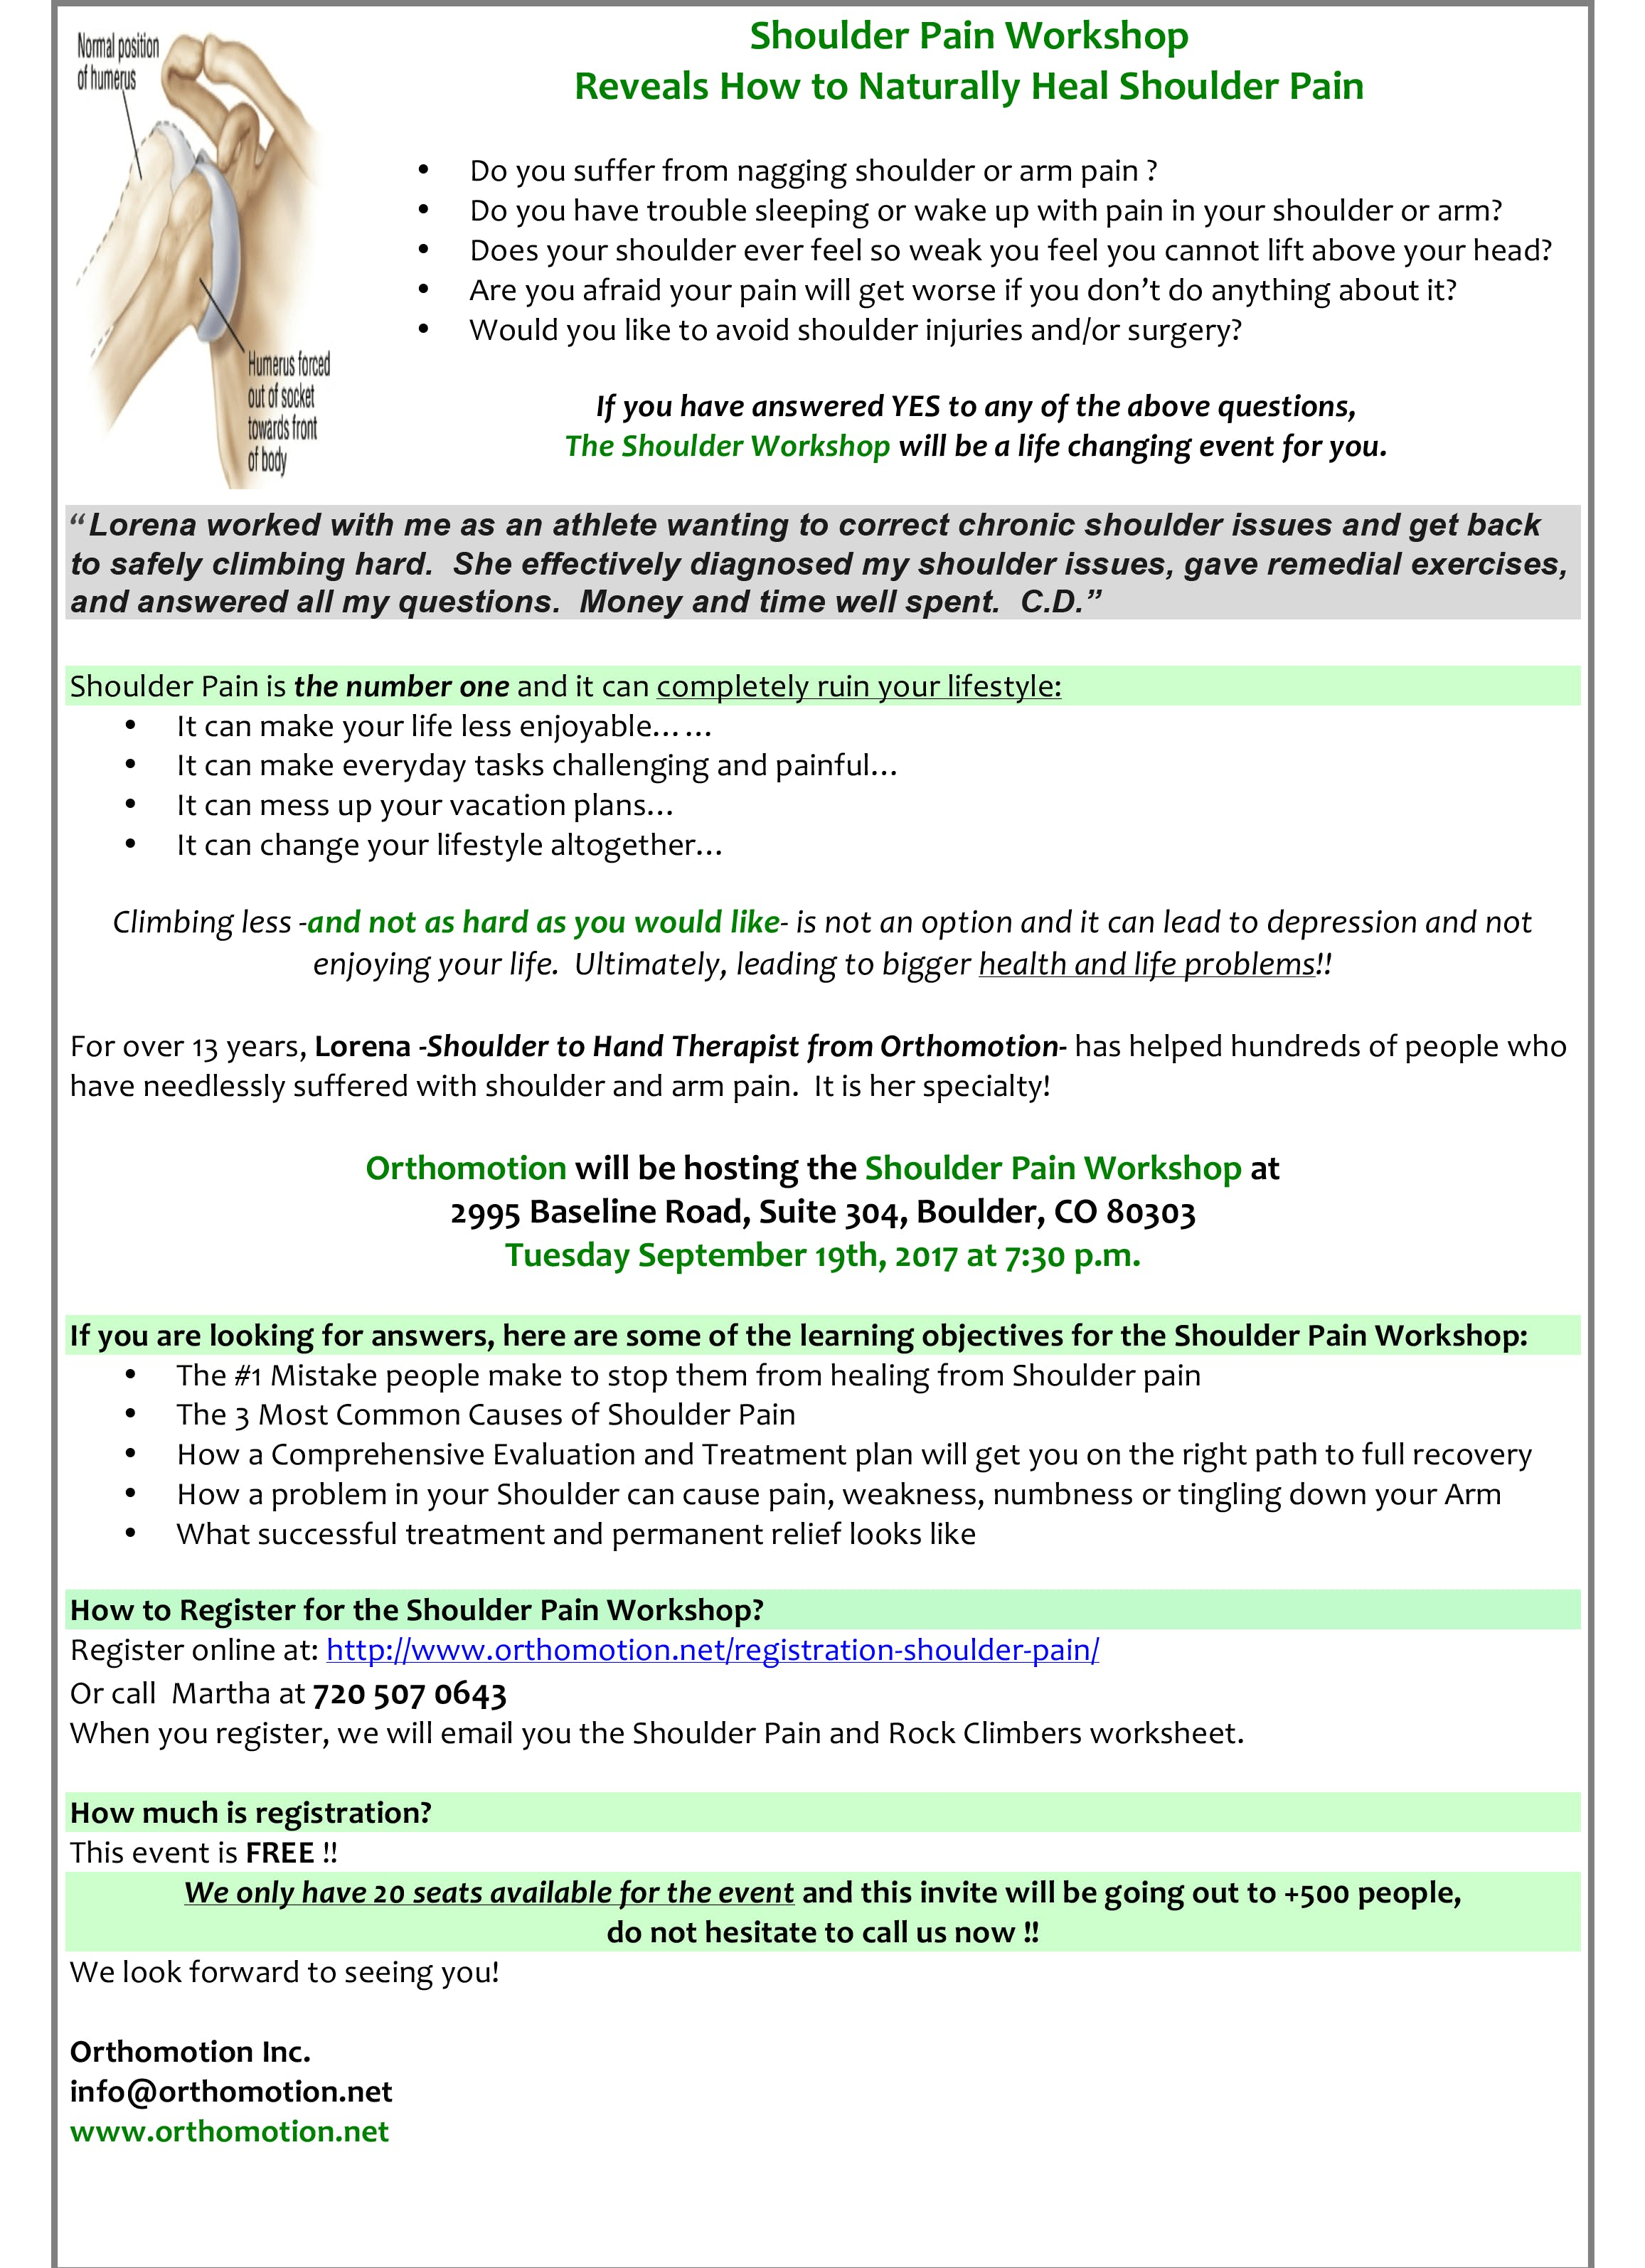 Shoulder Pain Workshop Reveals How to Naturally Relieve Shoulder Pain